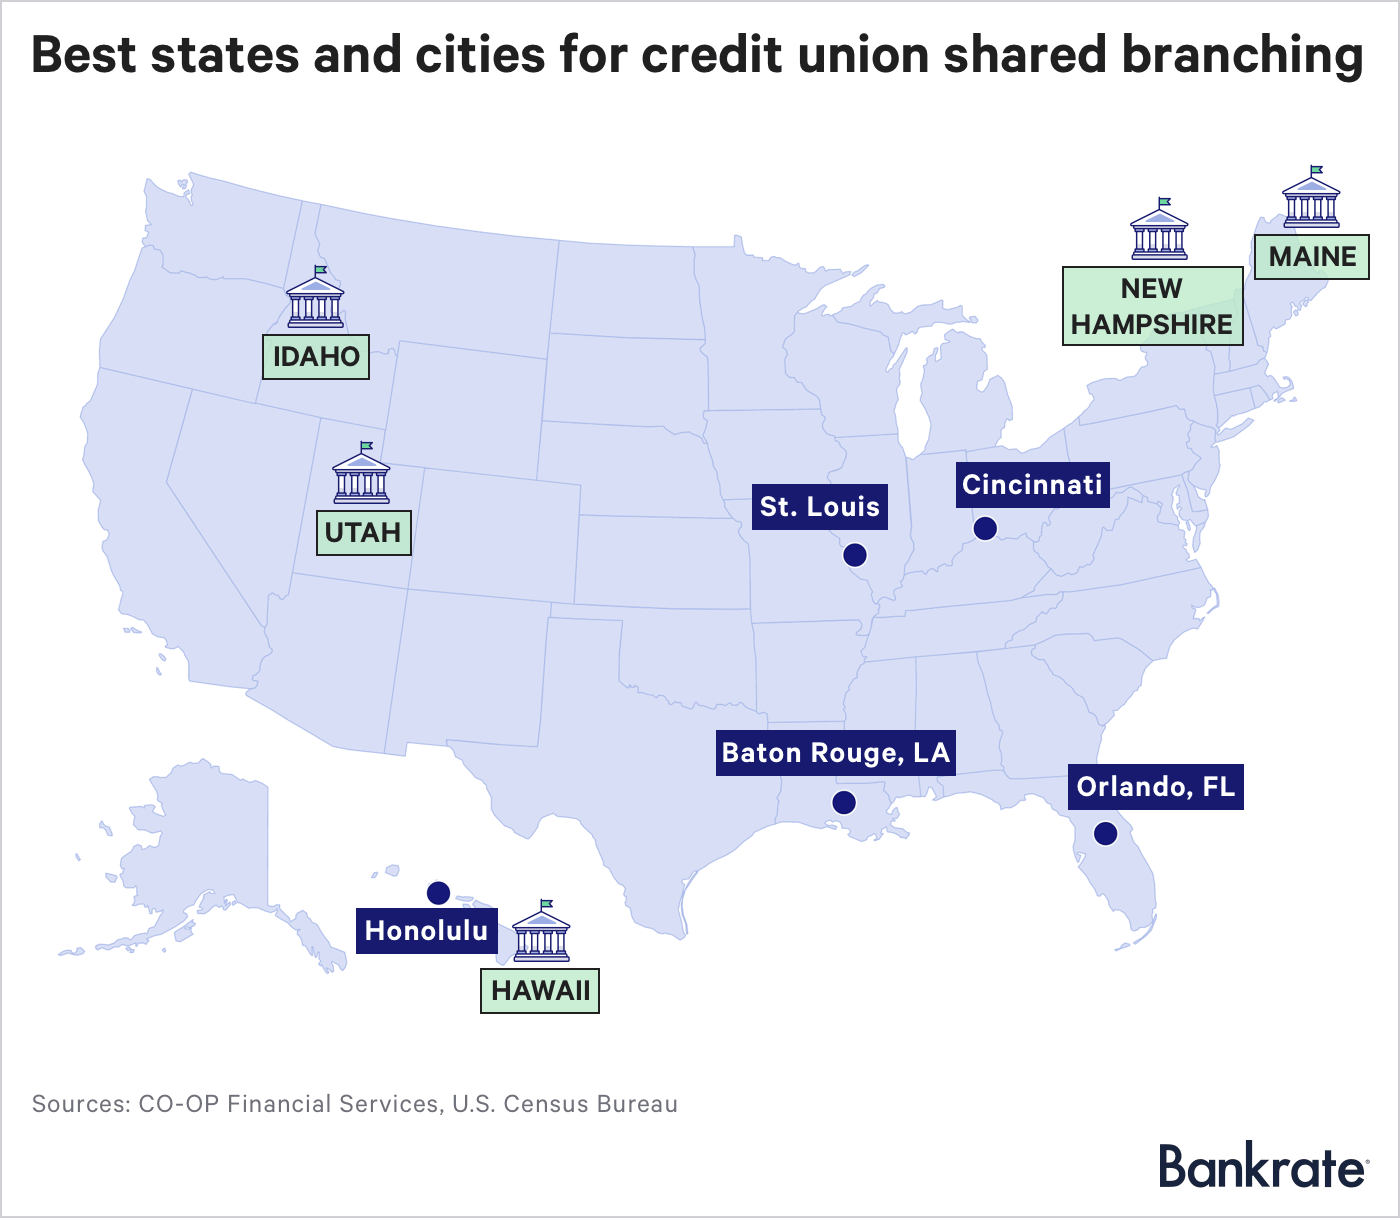 Map: Best states and cities for credit union shared branching